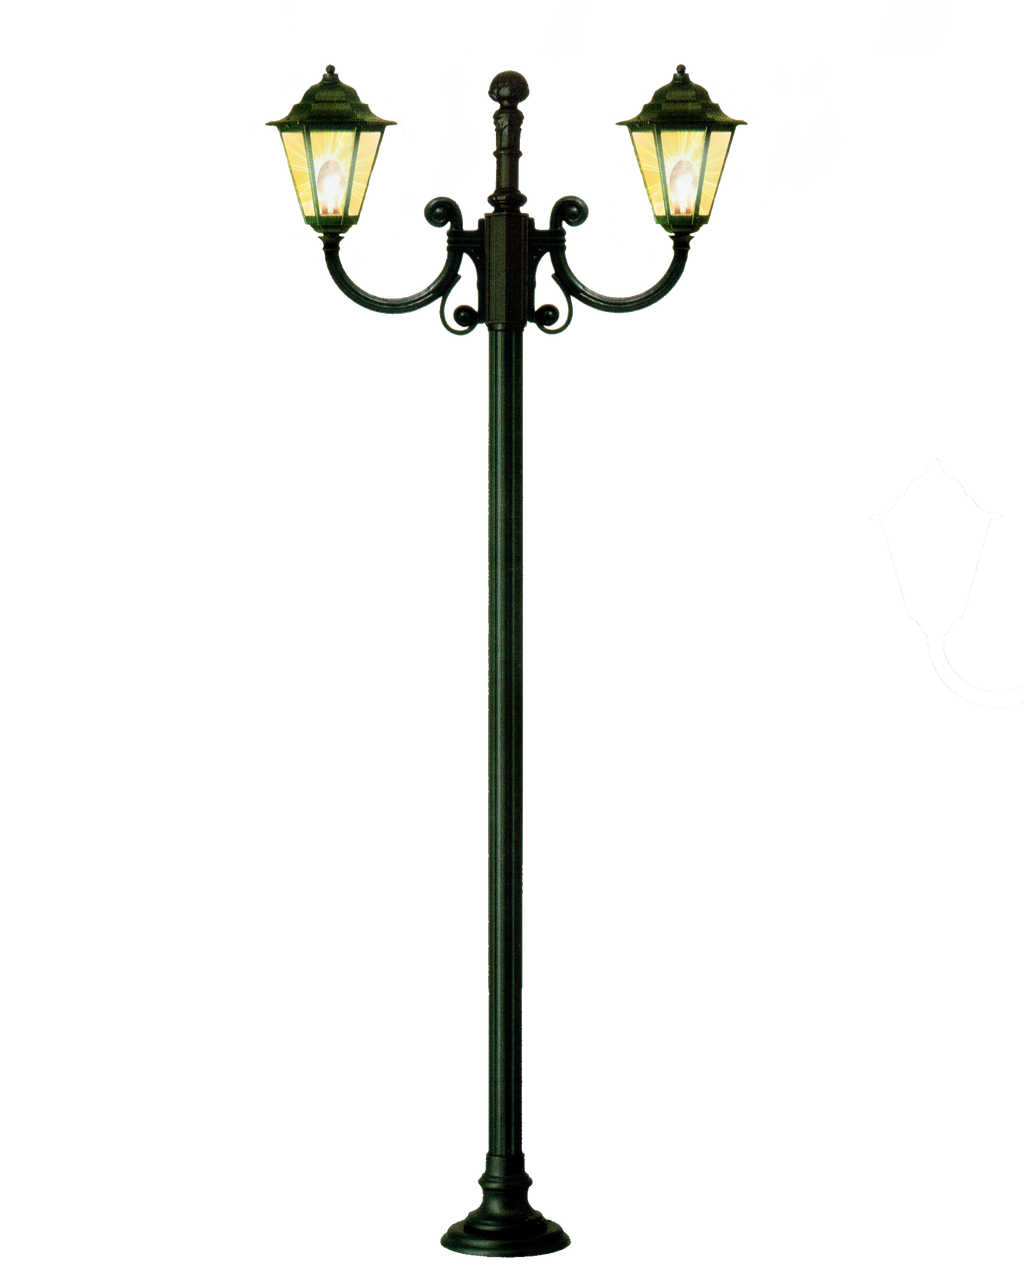 Png Lamp by Moonglowlilly on DeviantArt for Road Lamp Png  588gtk